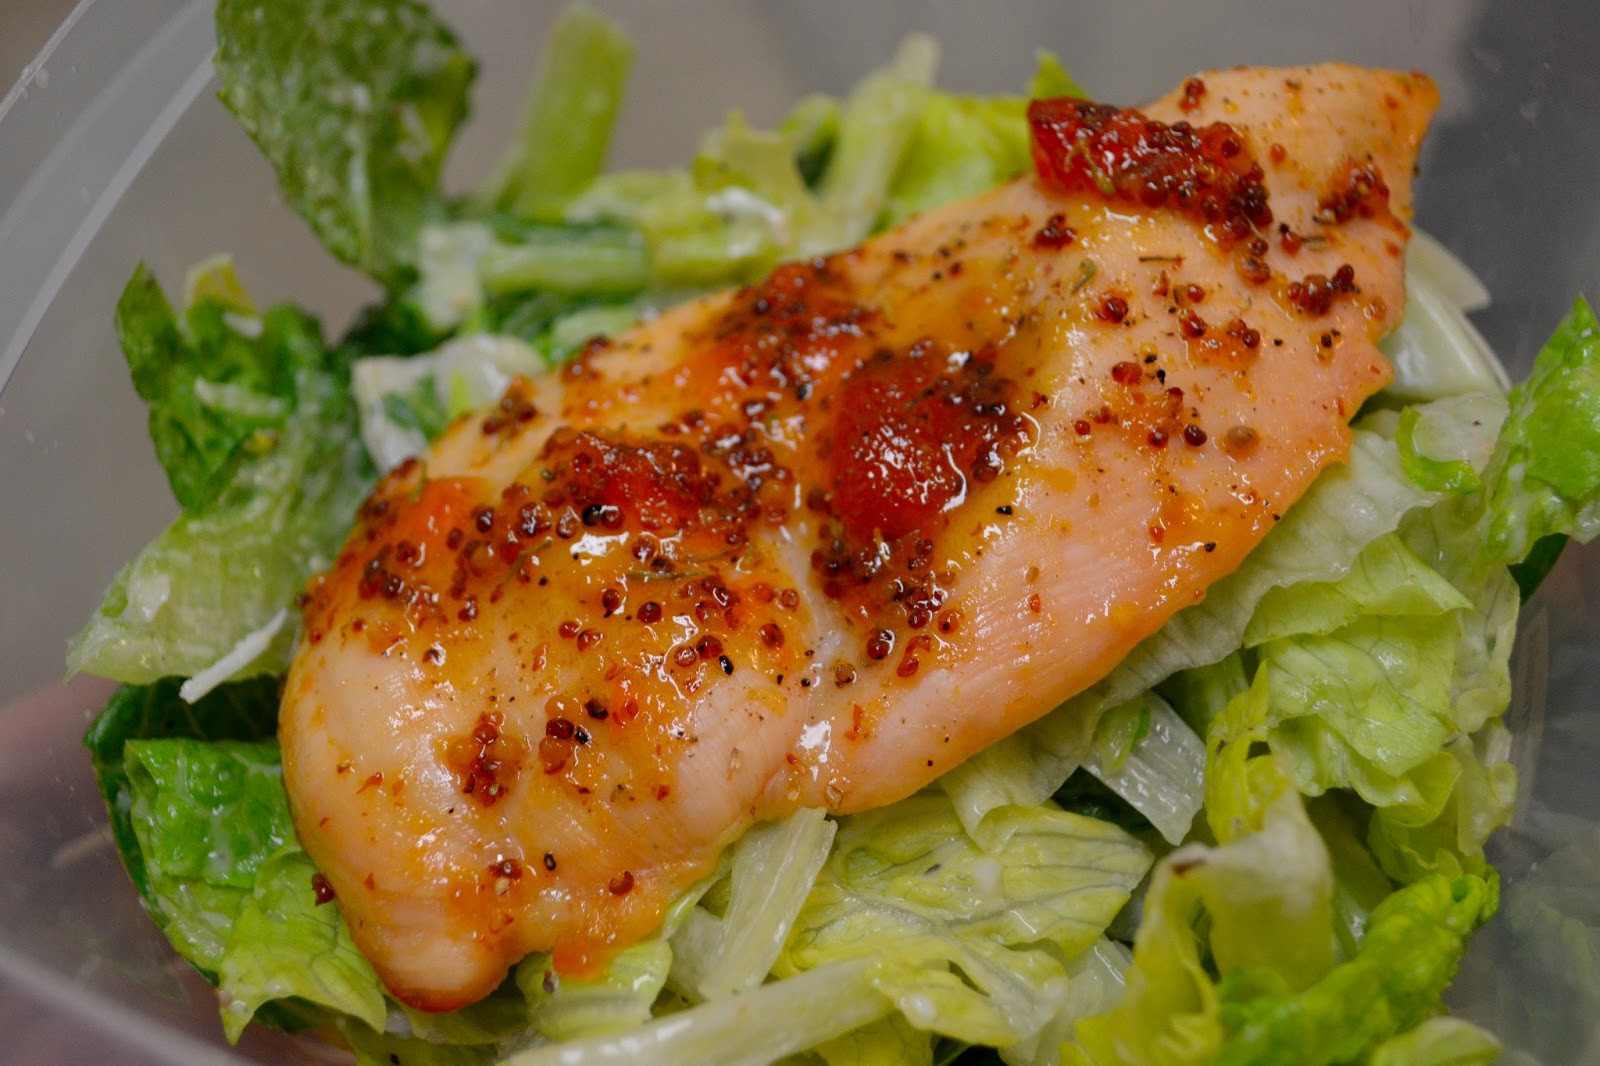 Baked Chicken Breast Calories  Baked Chicken Breast Recipes Easy Calories Bone in And